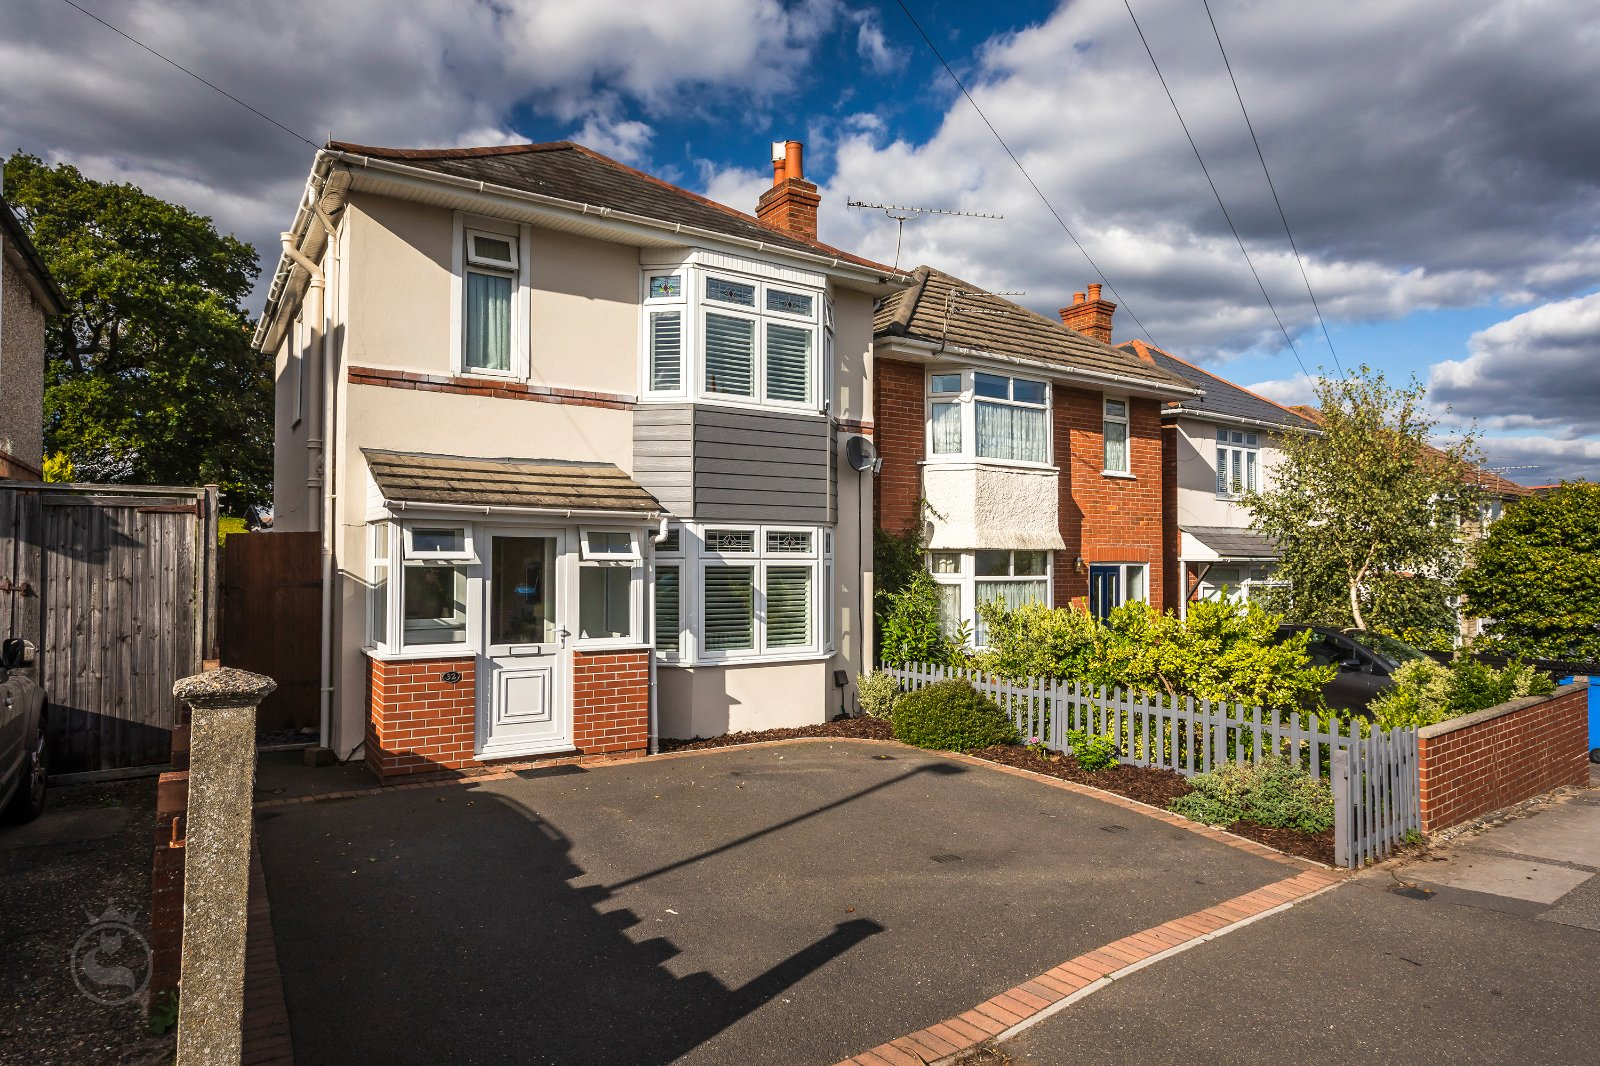 3 bed house for sale in Wroxham Road, Branksome 0